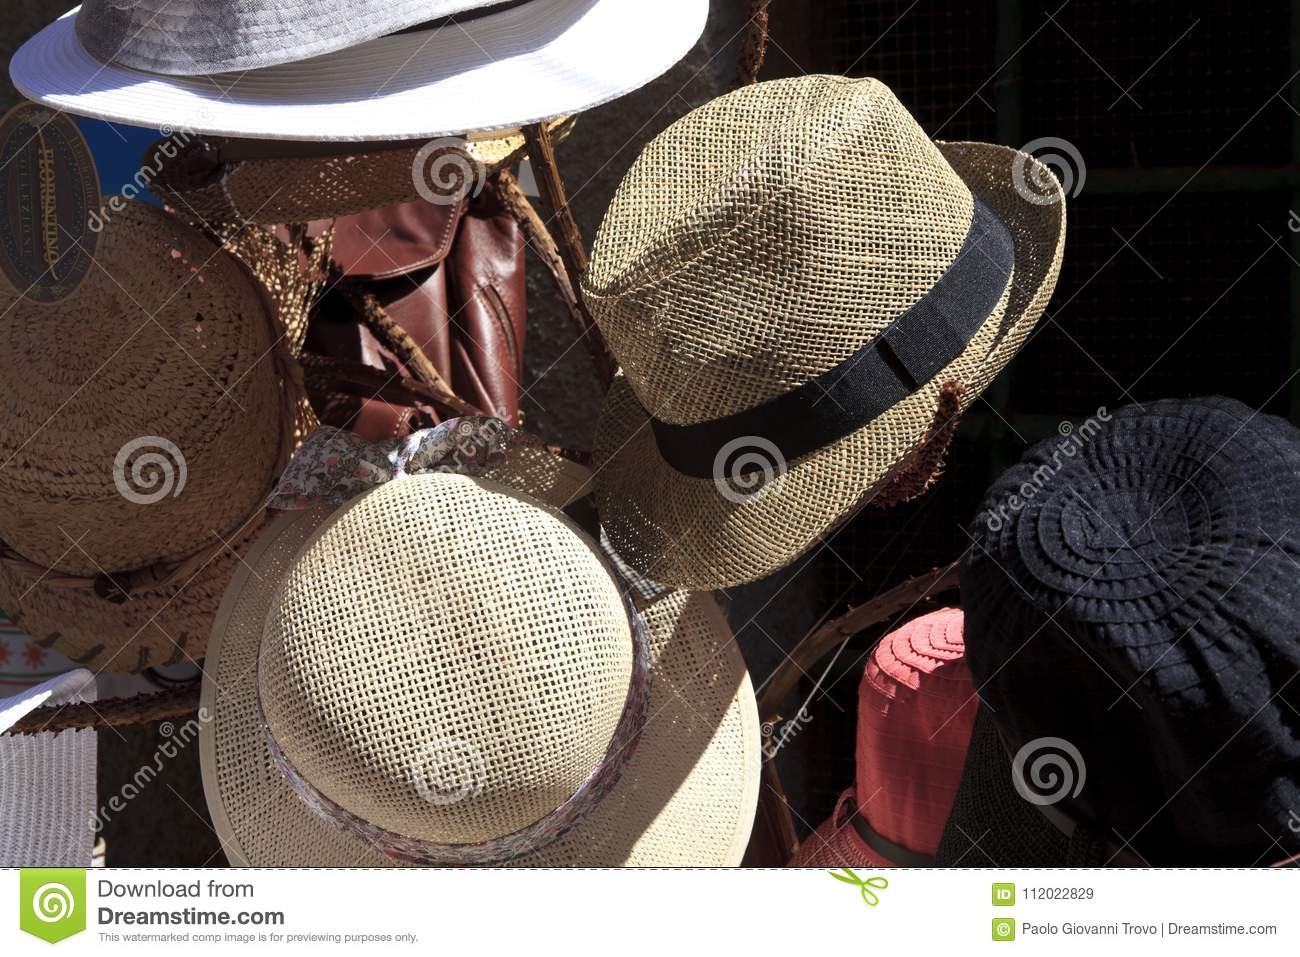 f896ddd9cce630 Riomaggiore SP , Italy - April 15, 2017: Hats near a souvenir shop in  Riomaggiore village, gulf of Poets, Cinque Terre, La Spezia, Liguria, Italy